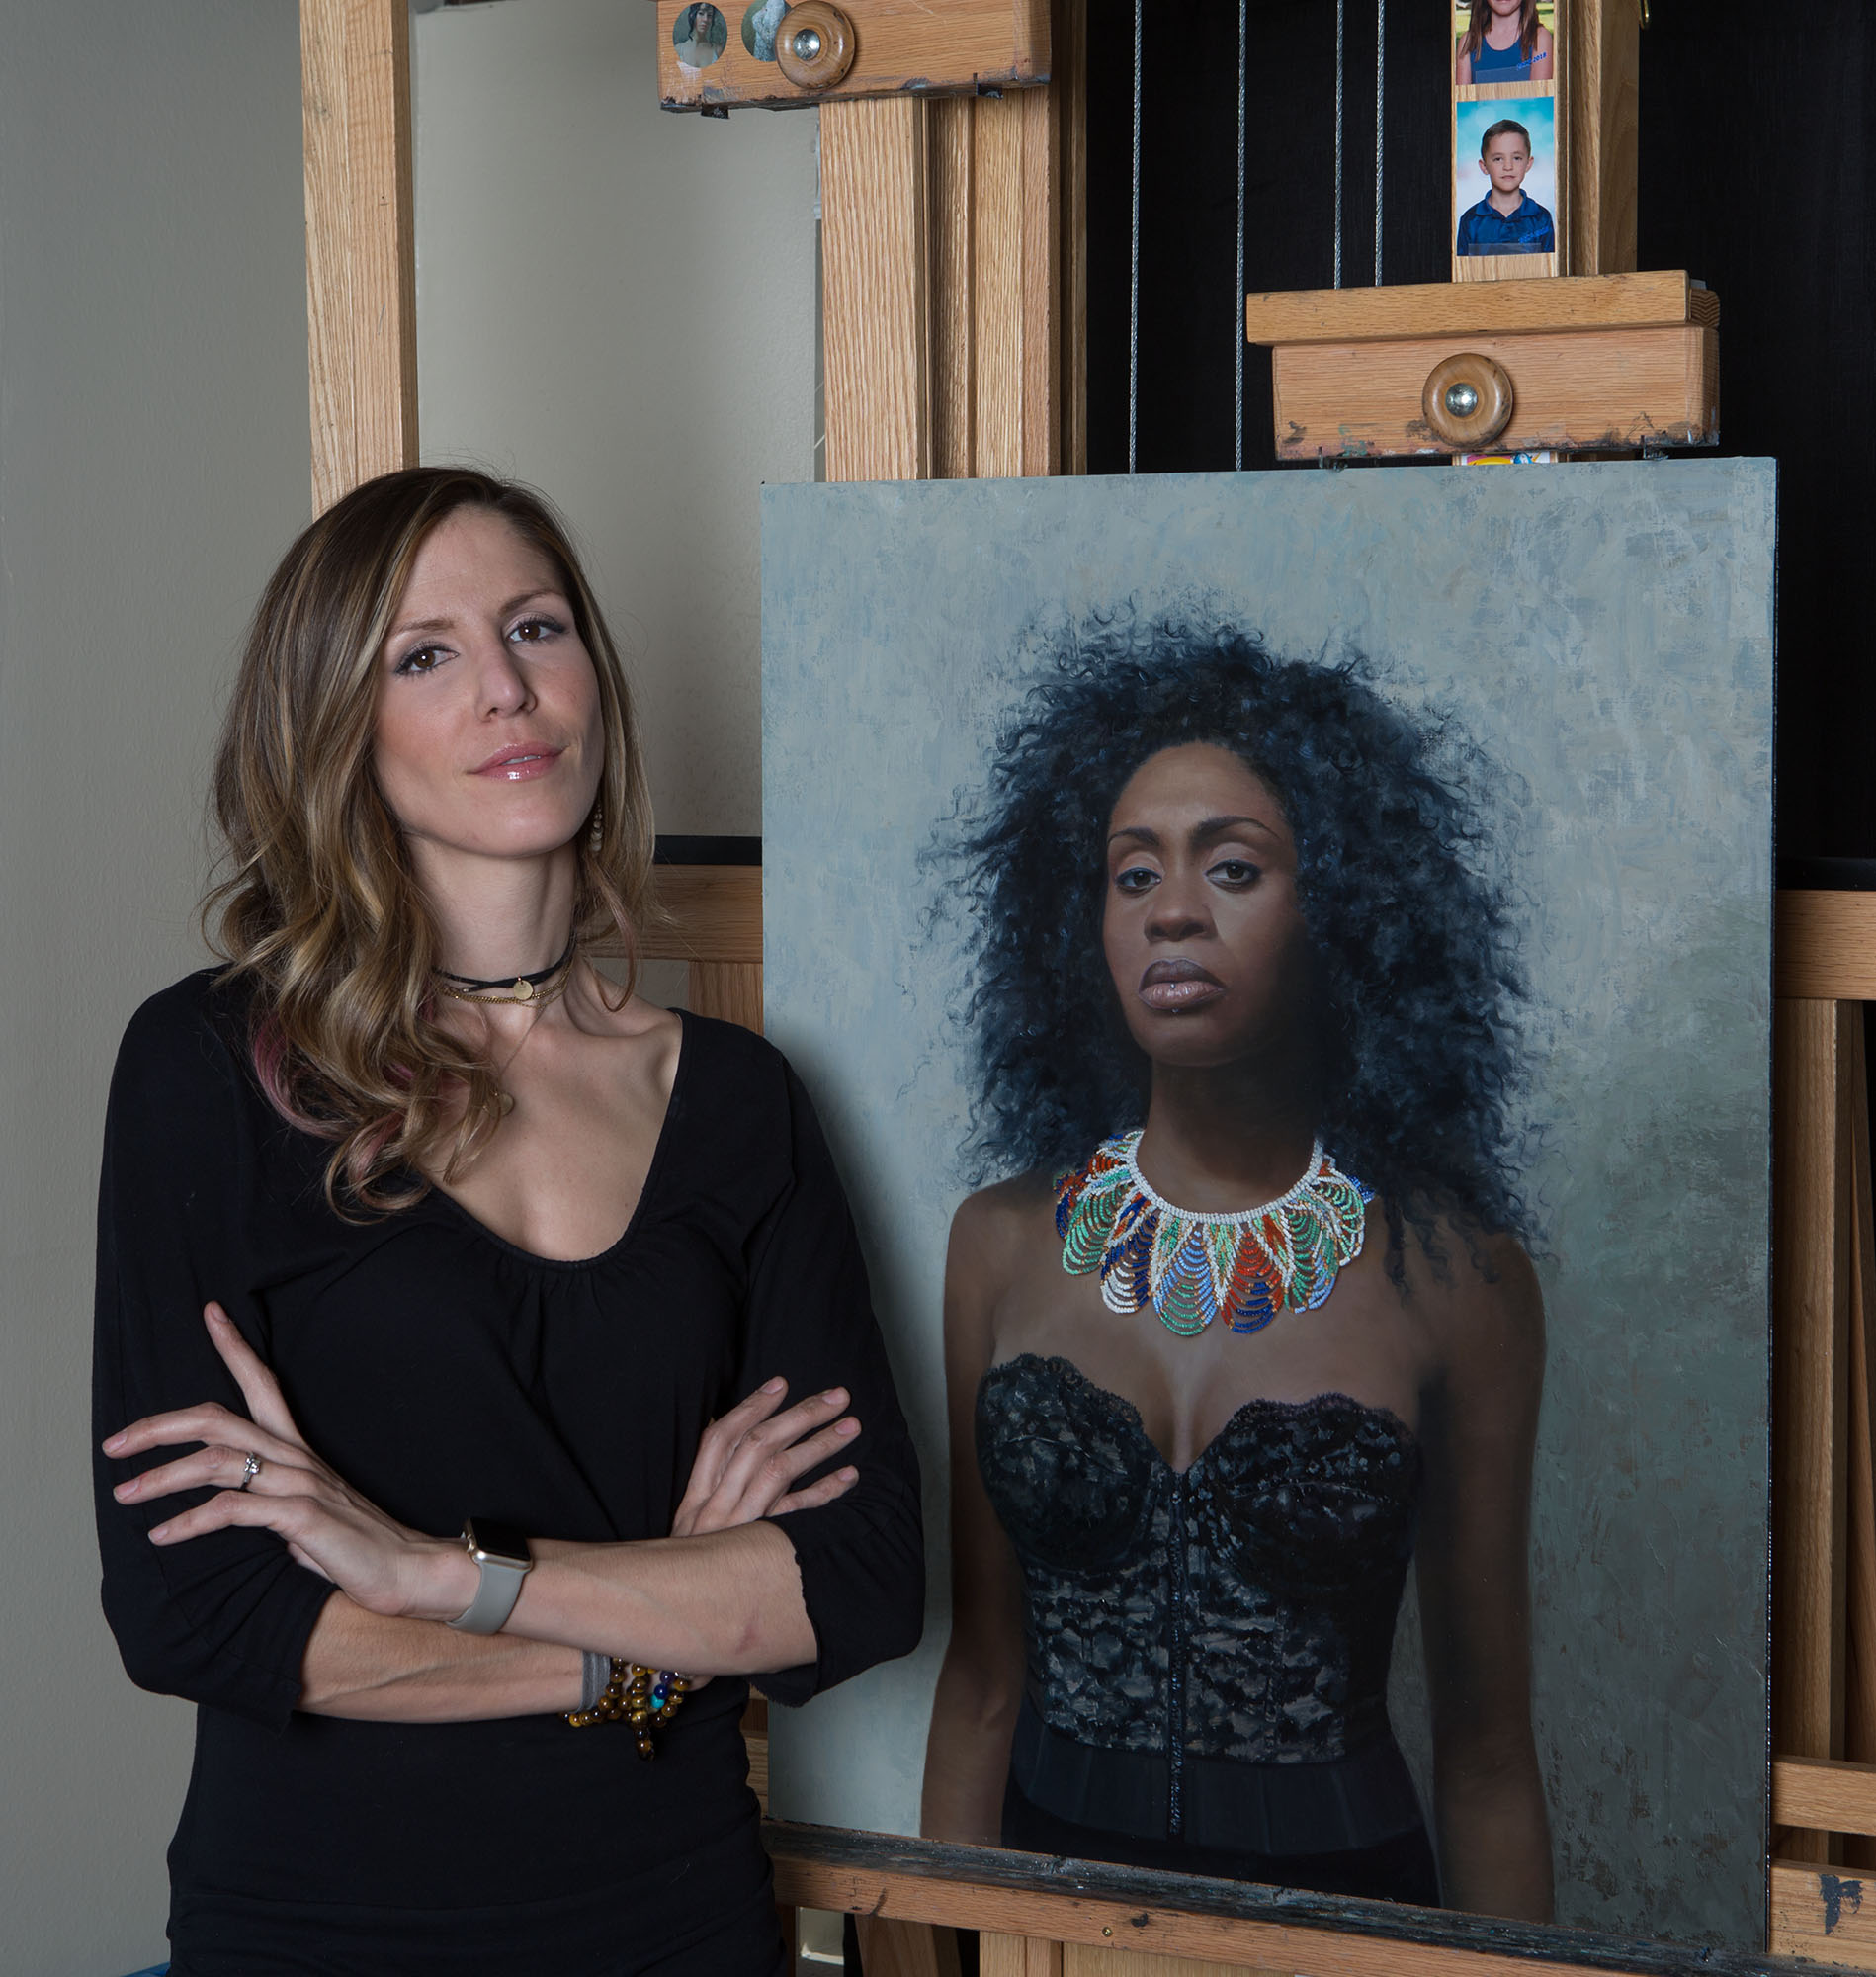 Artist Shana Levenson with Portrait